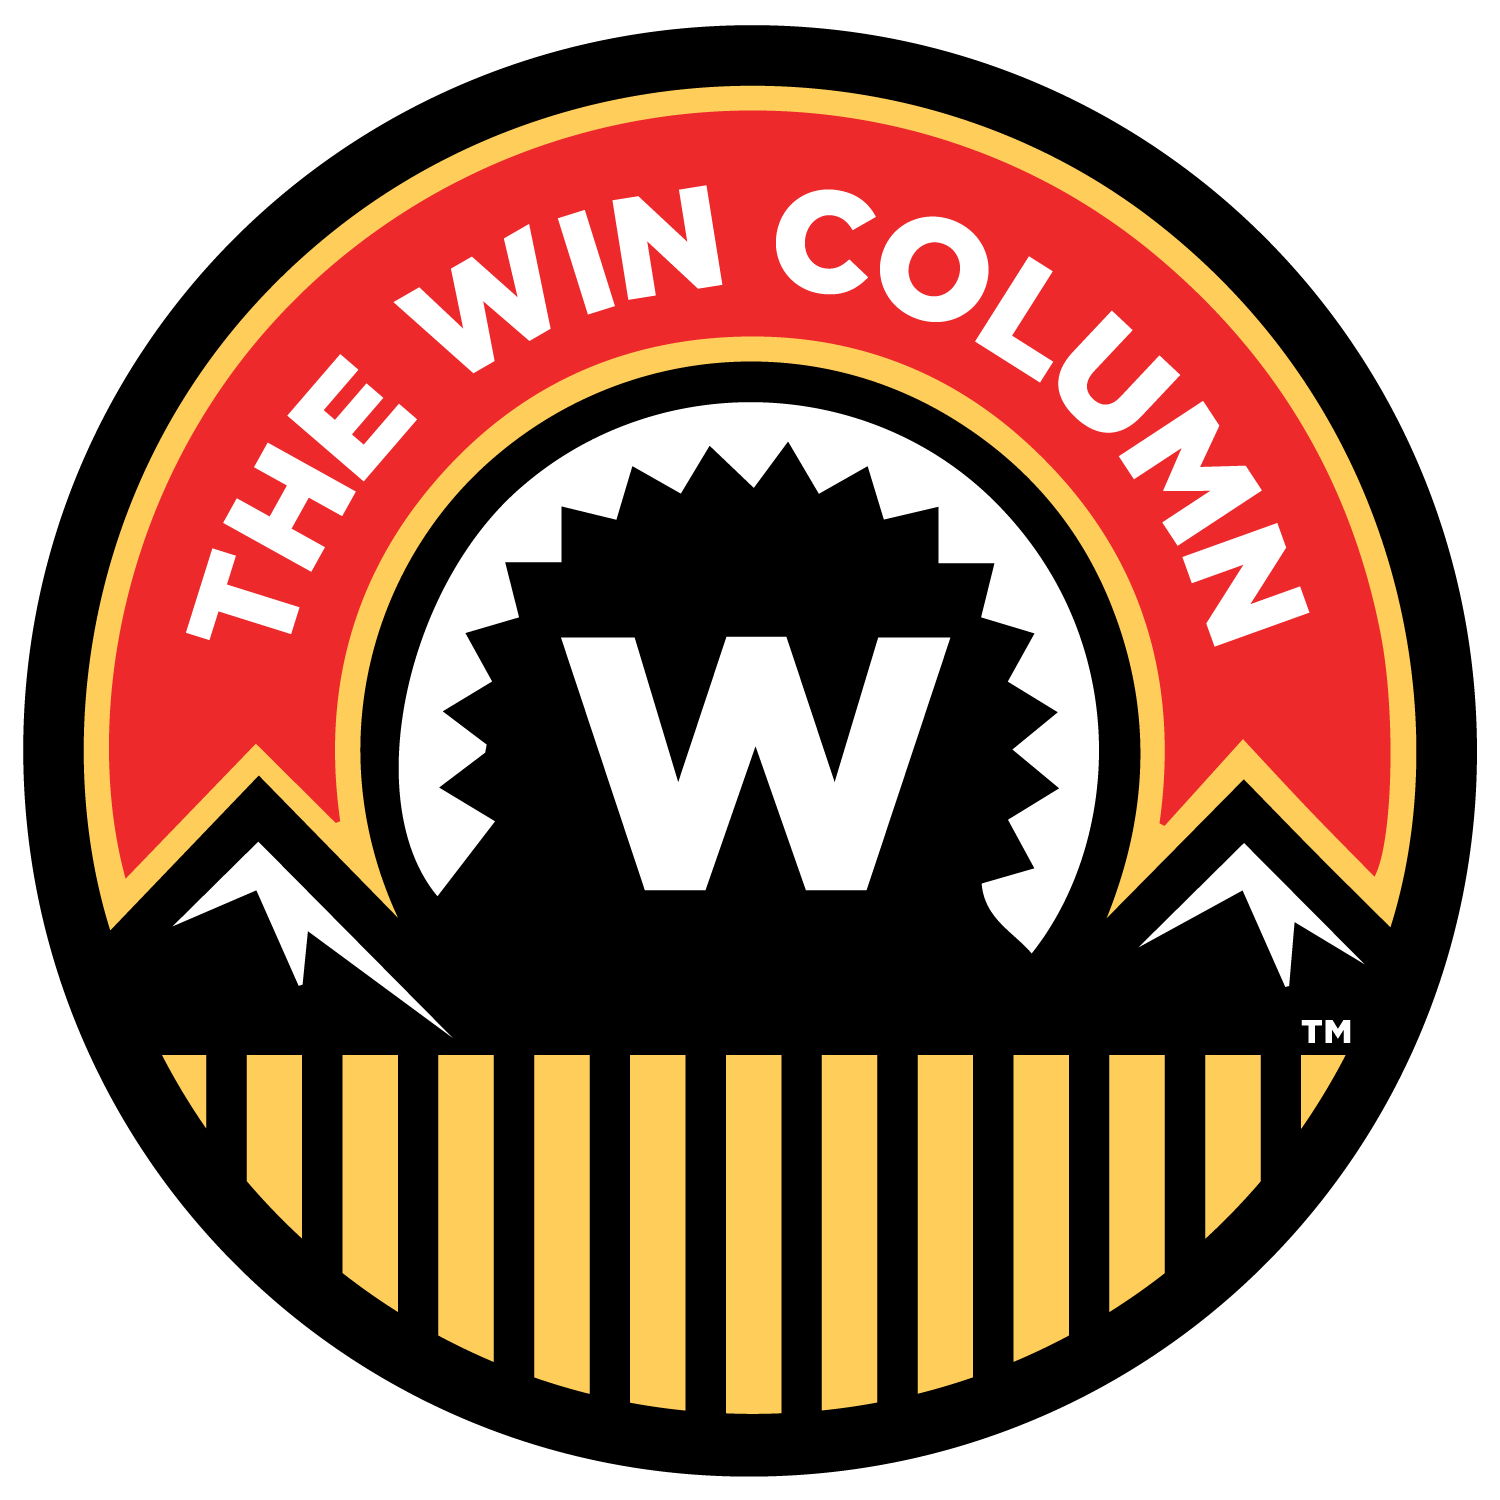 The Win Column